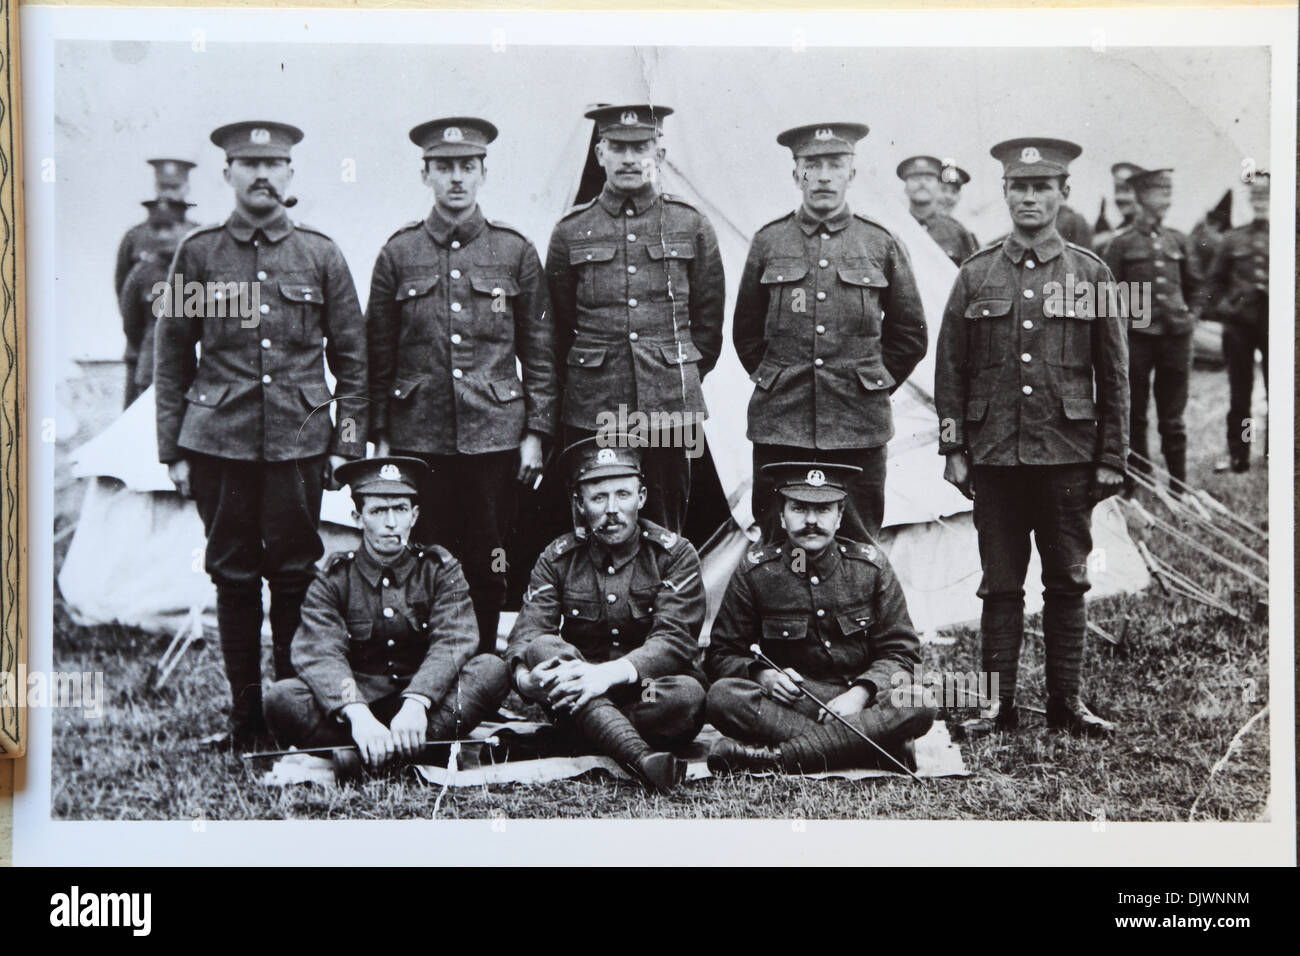 British First World War soldiers in encampment, 1st World War, 1st WW, Great War 1914-1918, history, archive archival - Stock Image